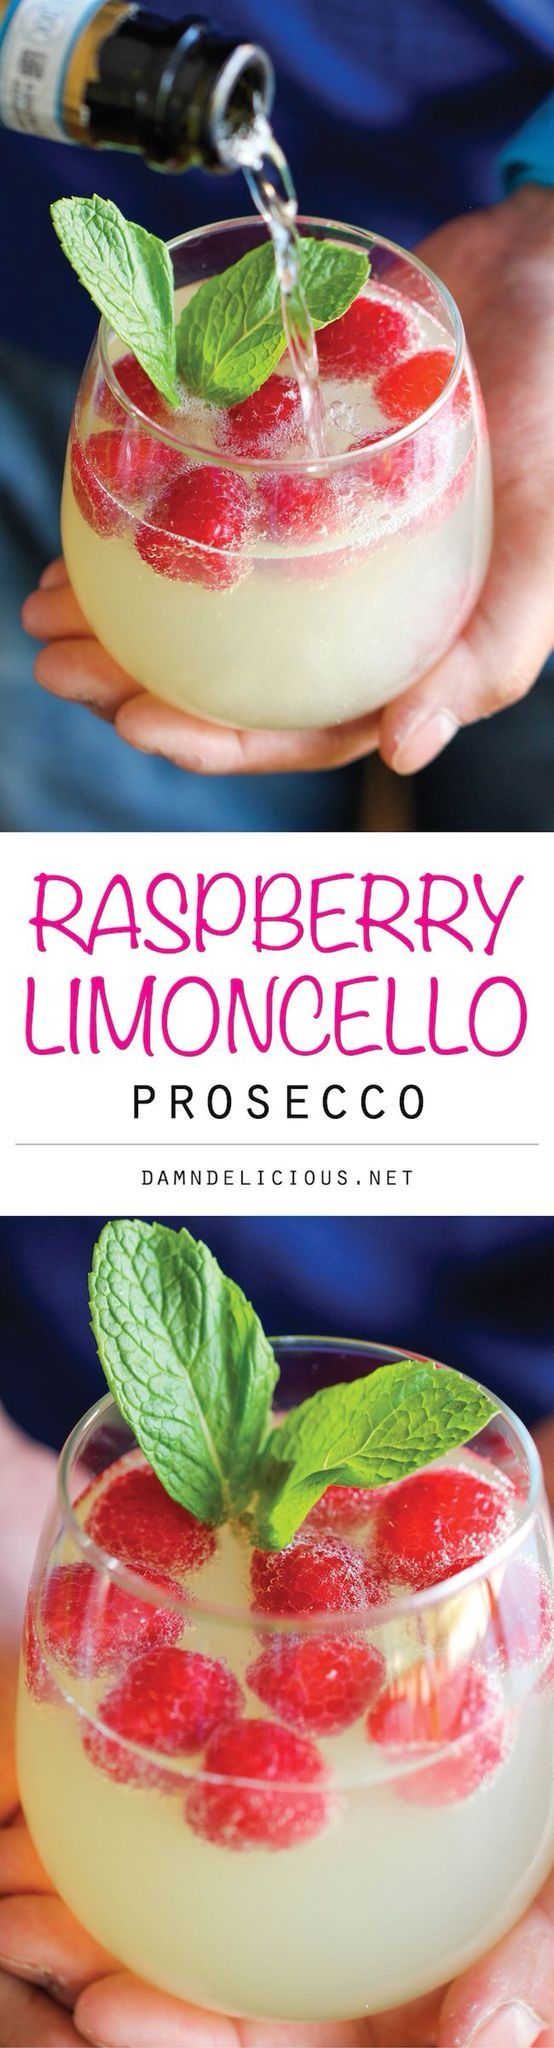 This looks pretty, but not sure I liked. Tried di Amore limoncello amnd Lamarca Prosecco. Might be the di Amore I don't like.